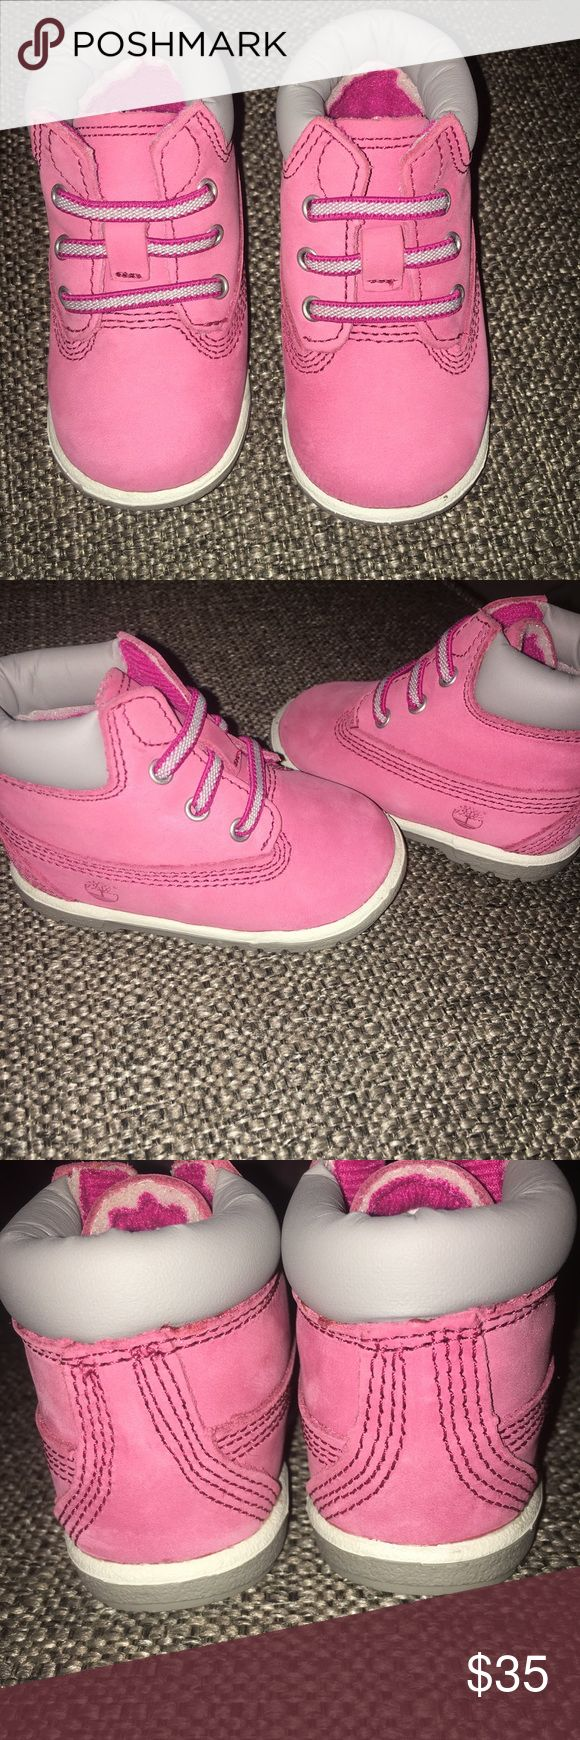 New in box baby girl timberlands size 2 Brand new in box. Size 2. Baby girl timberland boots. Would make a great Christmas present!!! Timberland Shoes Baby & Walker